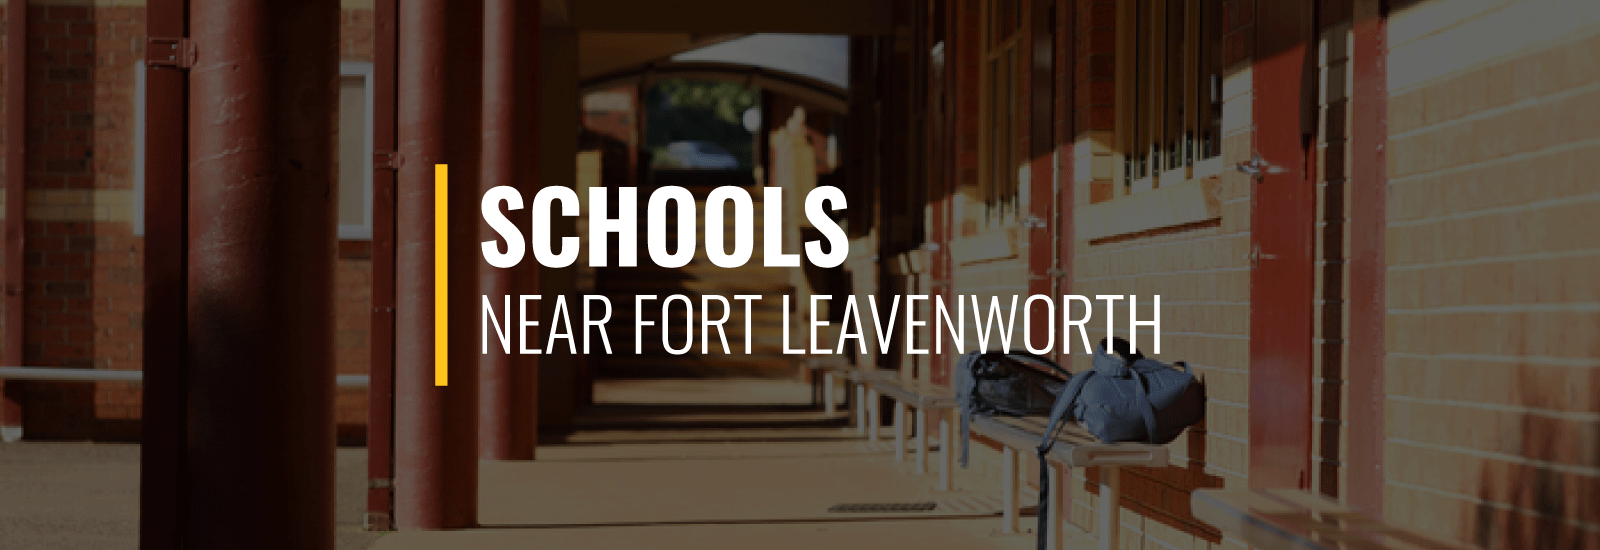 Fort Leavenworth Schools